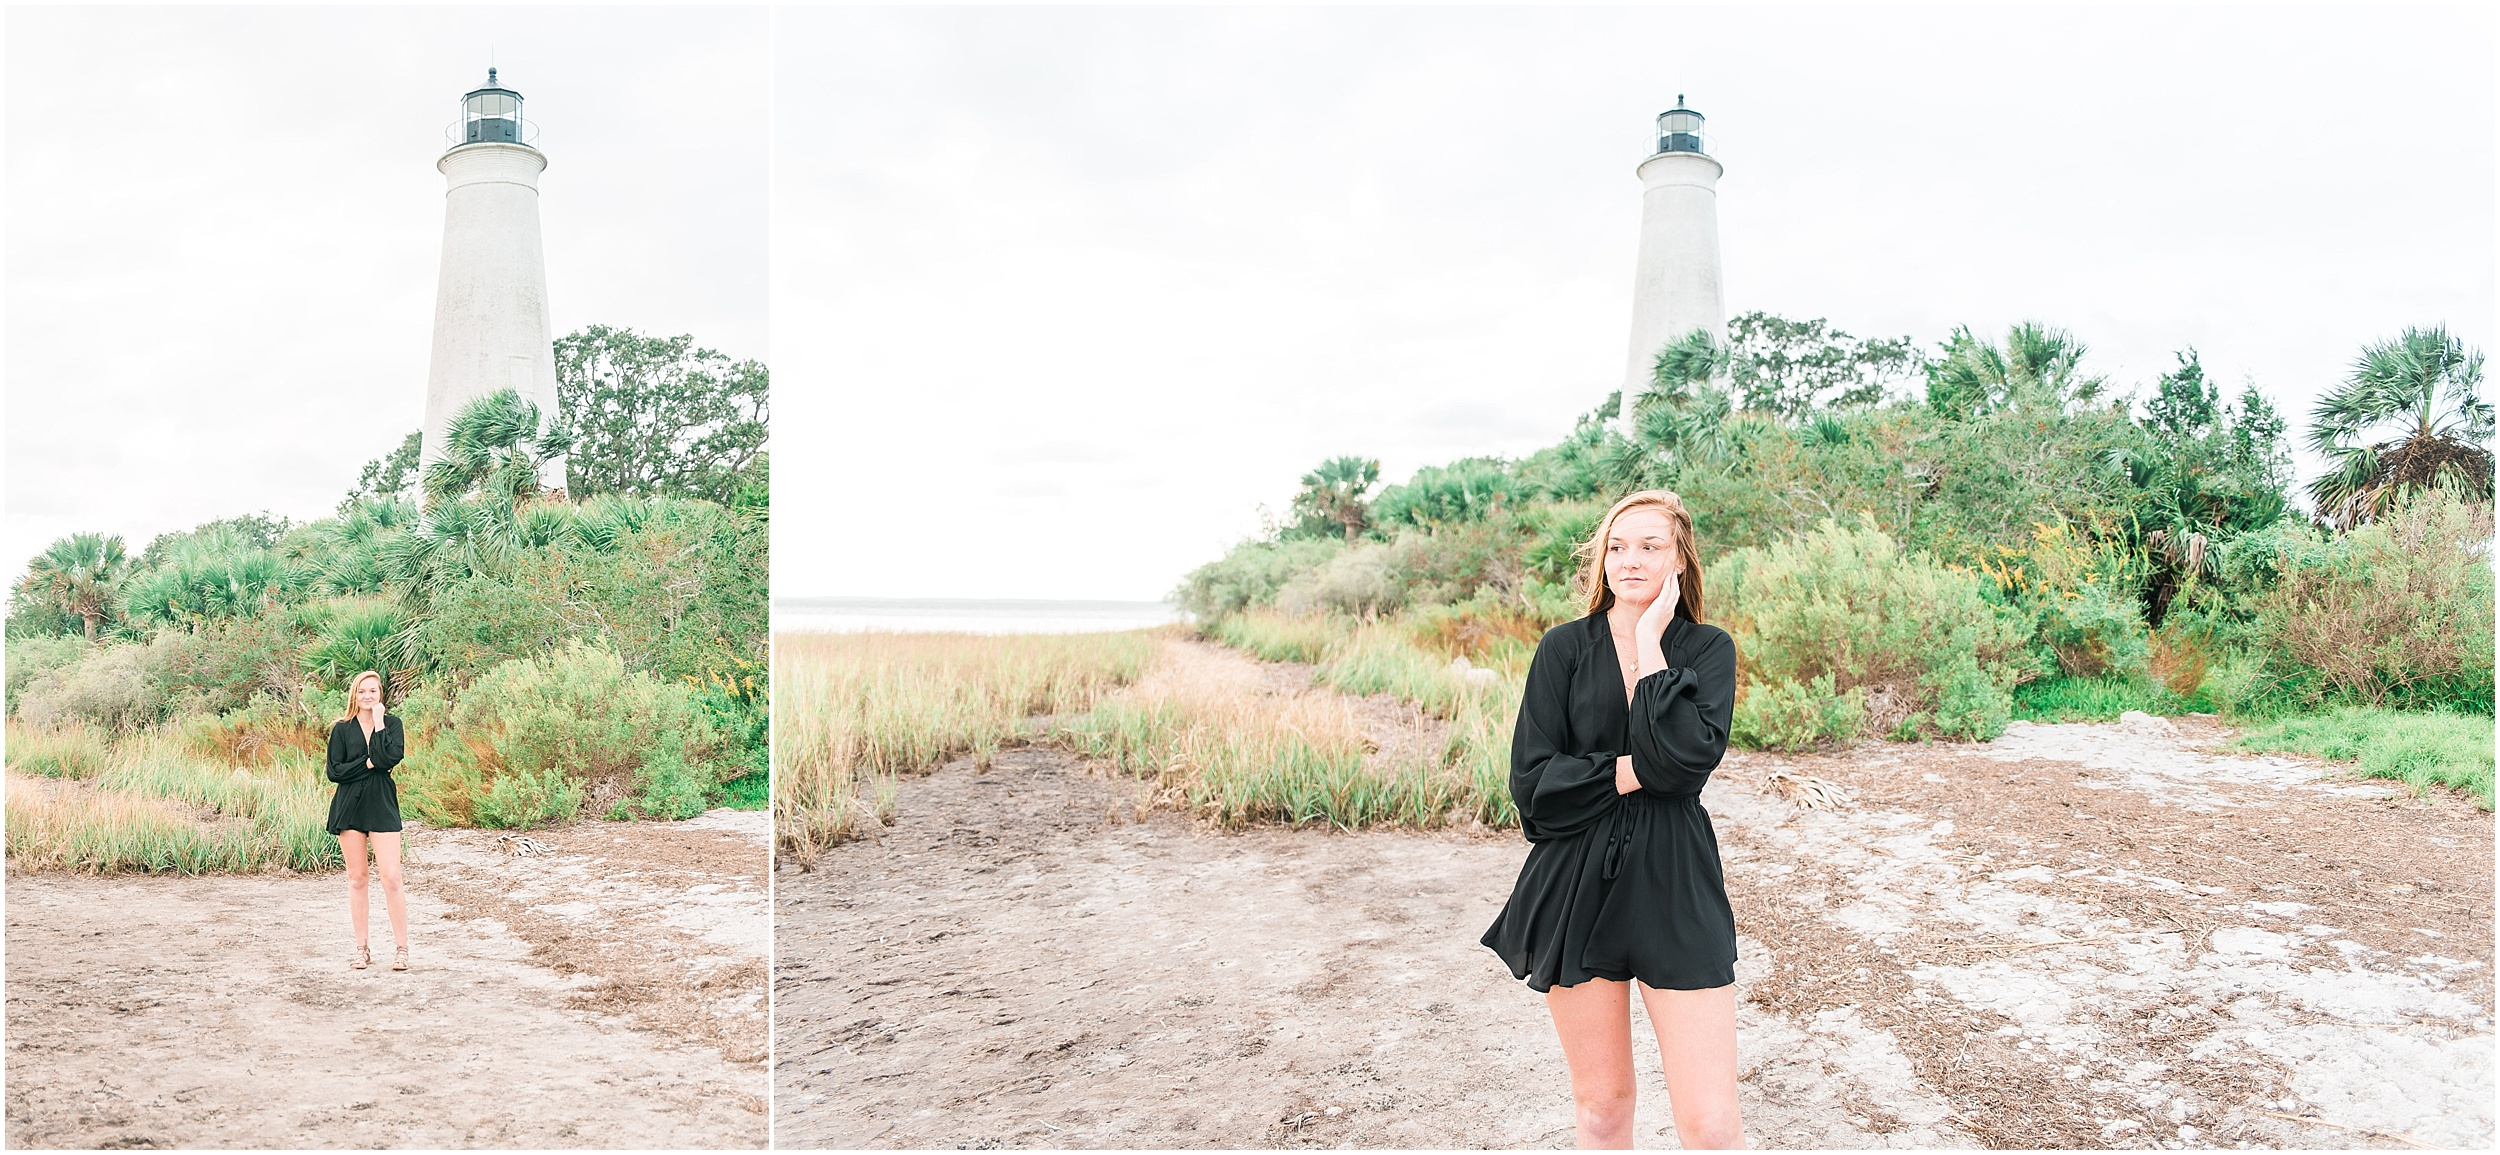 Tallahassee Florida Wedding & Senior Photographer, Anna Senior Session at Saint Marks Lighthouse, Crawfordville Florida_0001.jpg